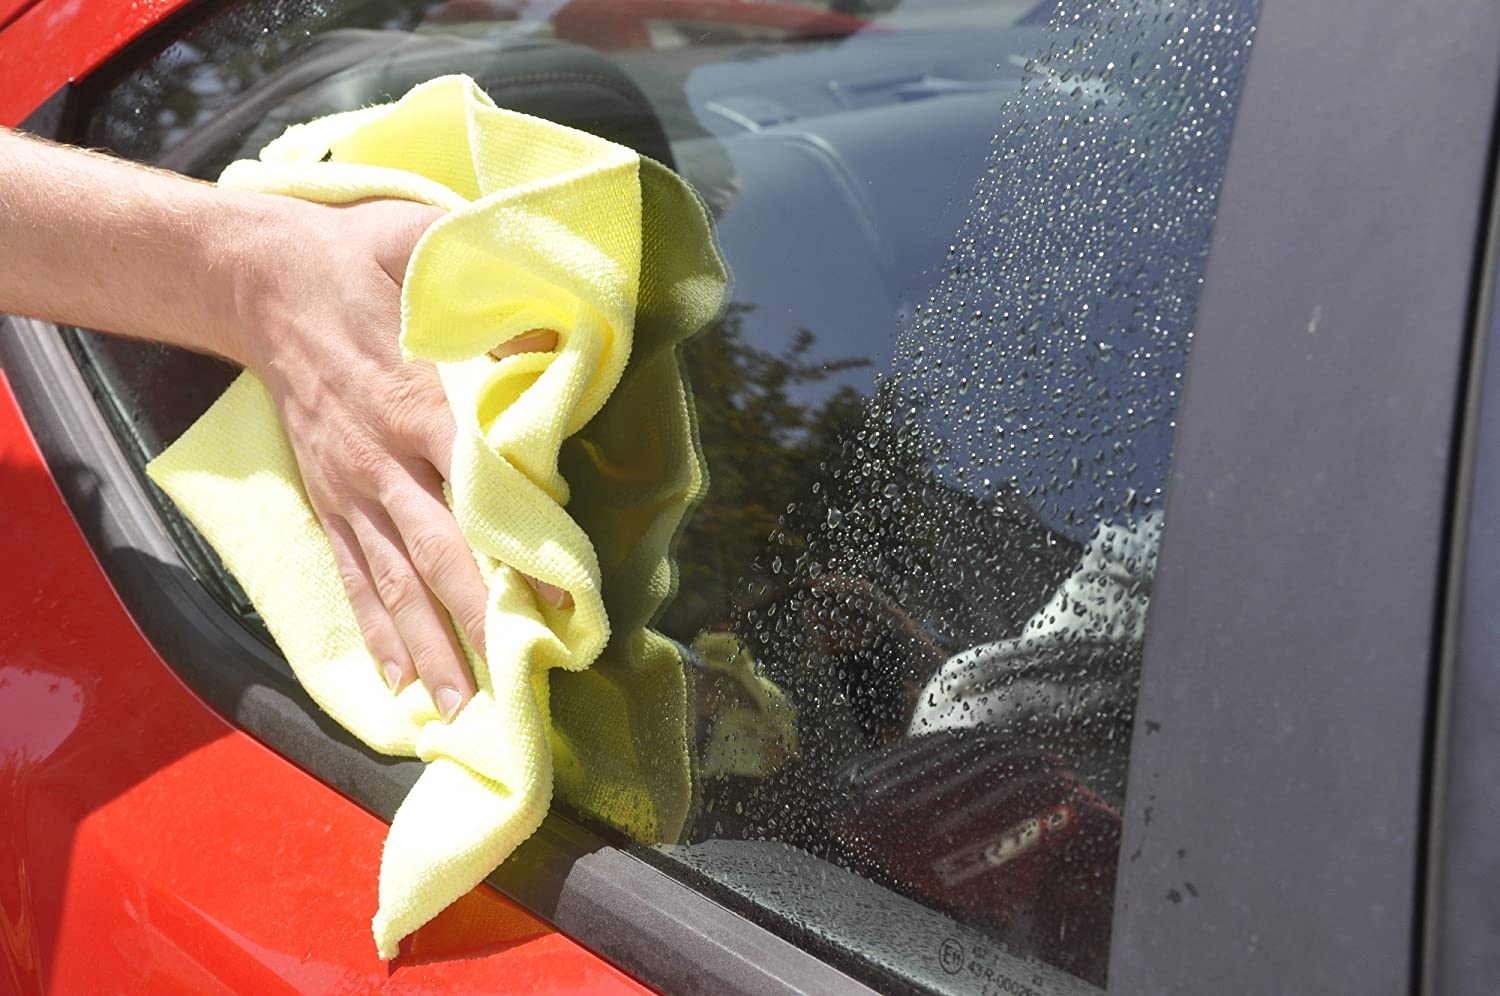 Detailers Preference Eurow Microfiber Cleaning Cloth Home Bath and Car Towels 3 Colors 15 Pack